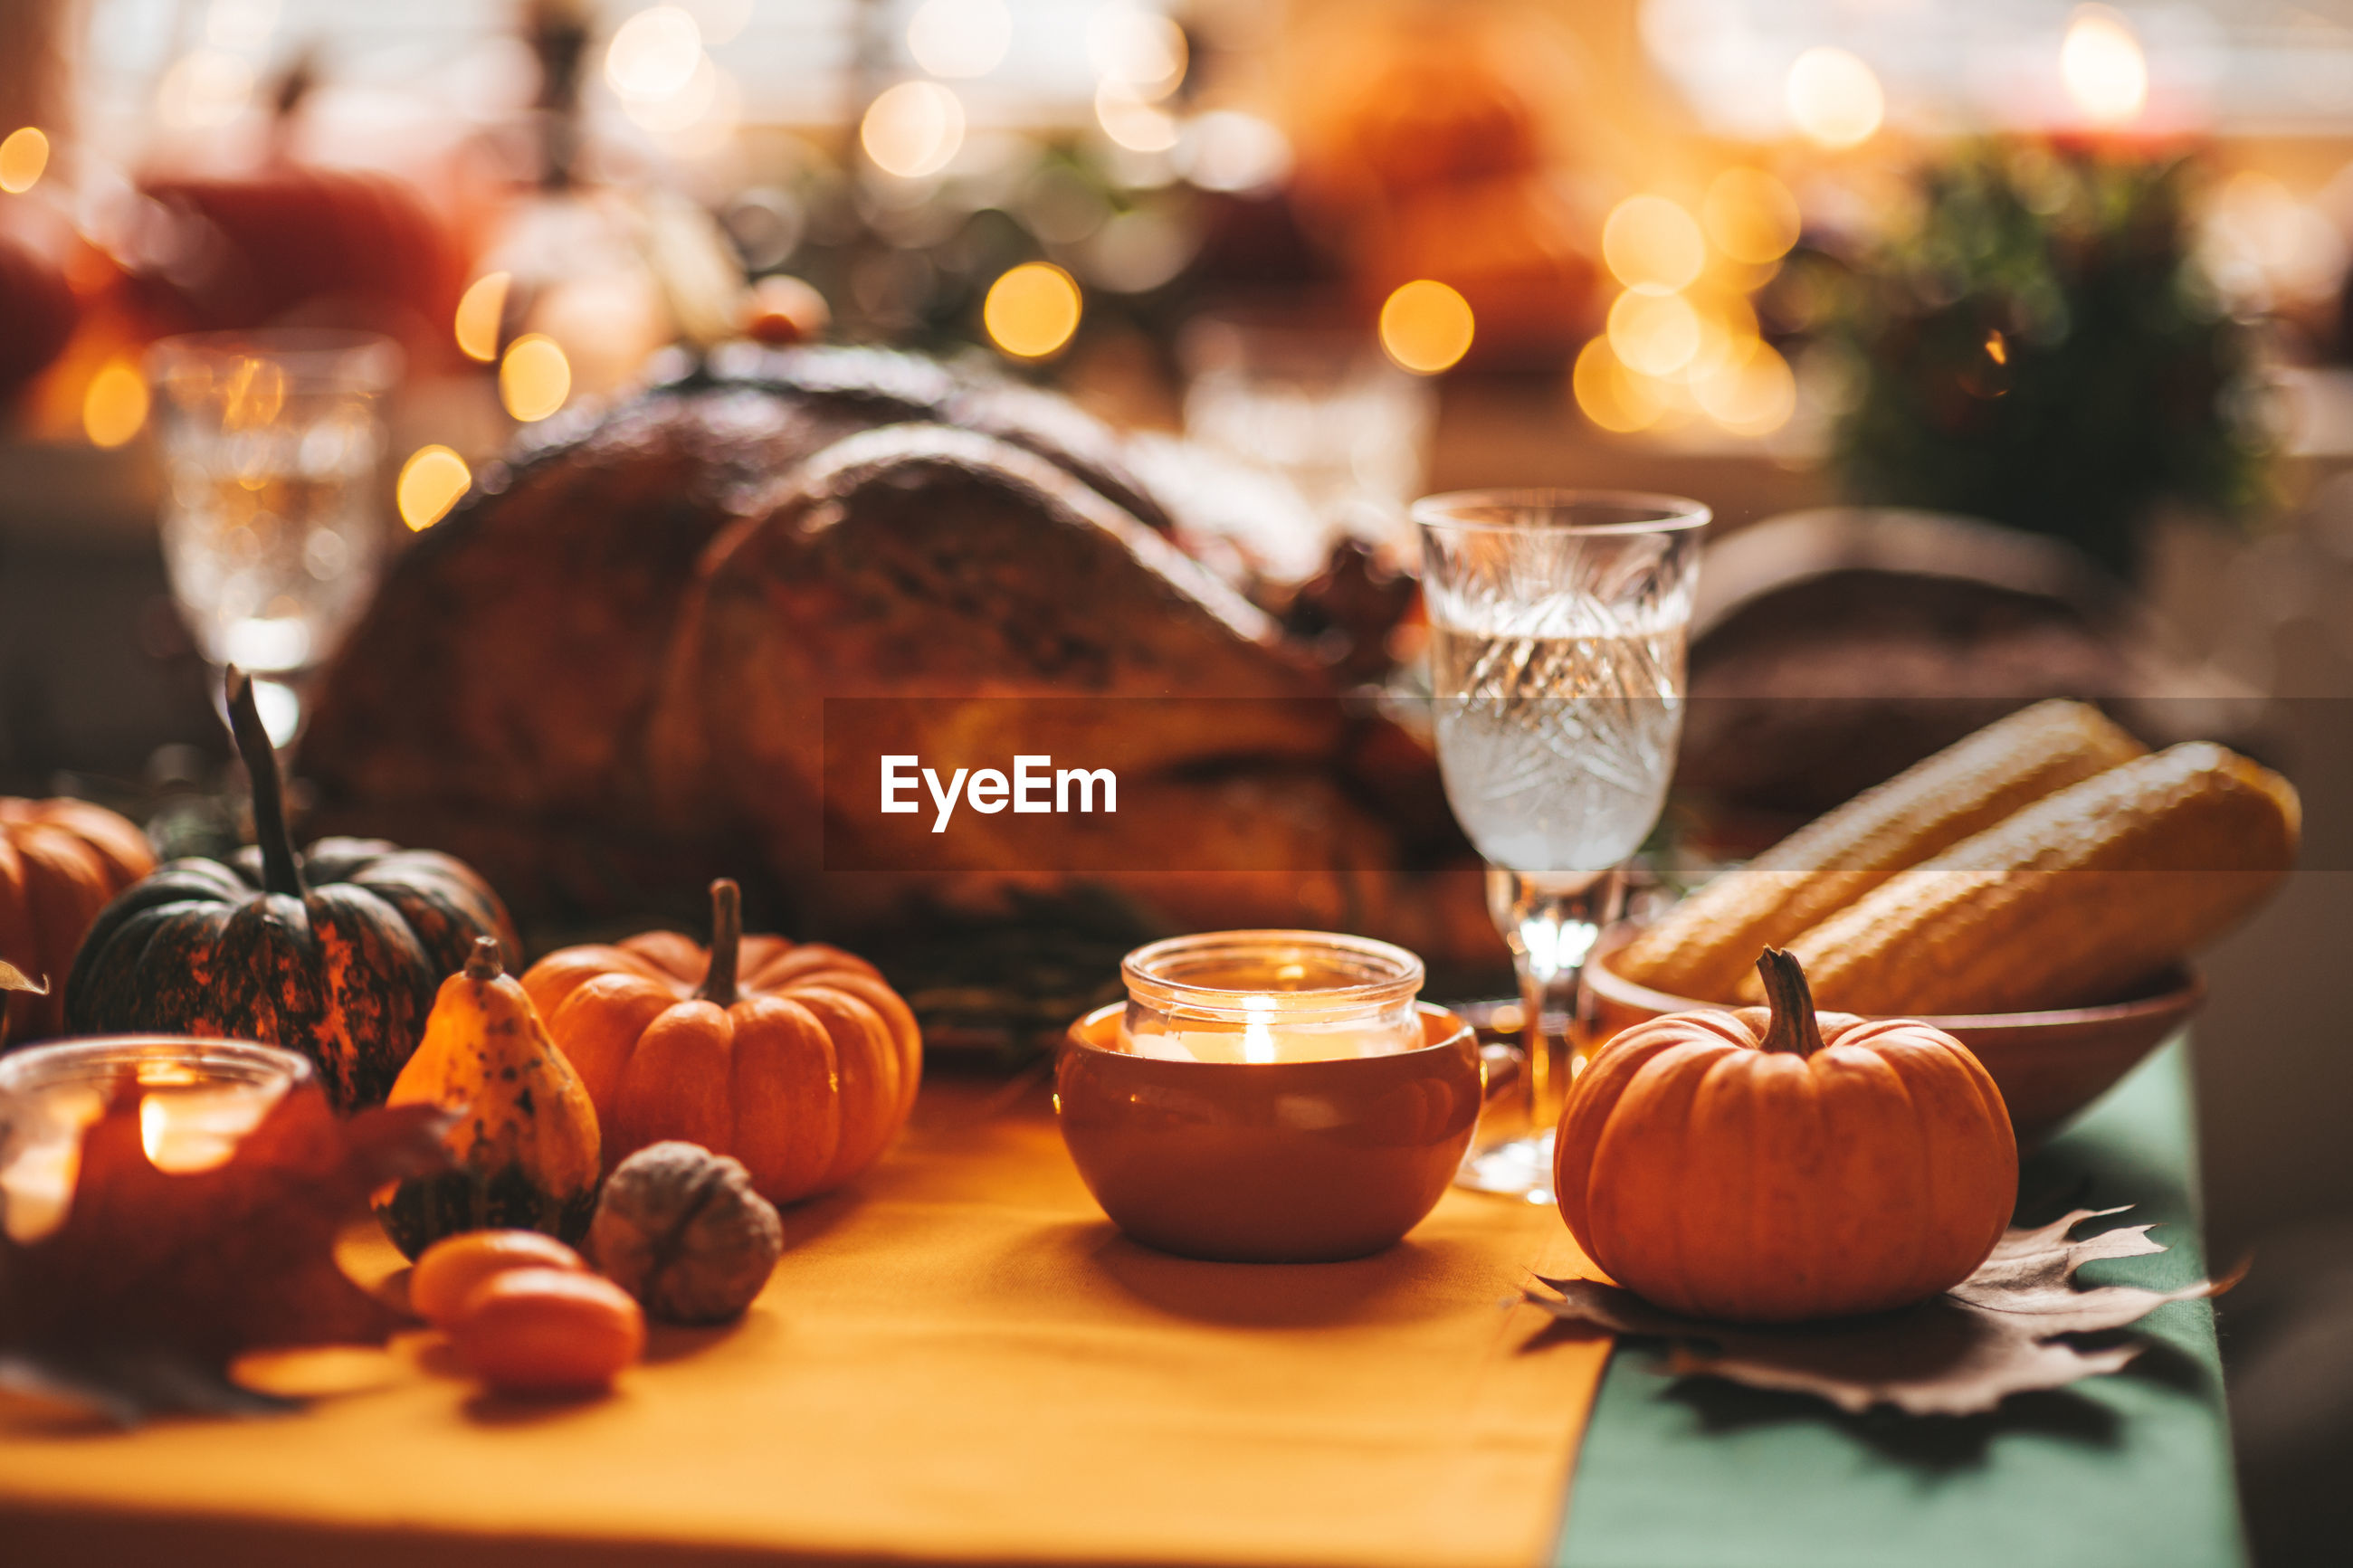 CLOSE-UP OF PUMPKIN WITH GLASSES ON TABLE